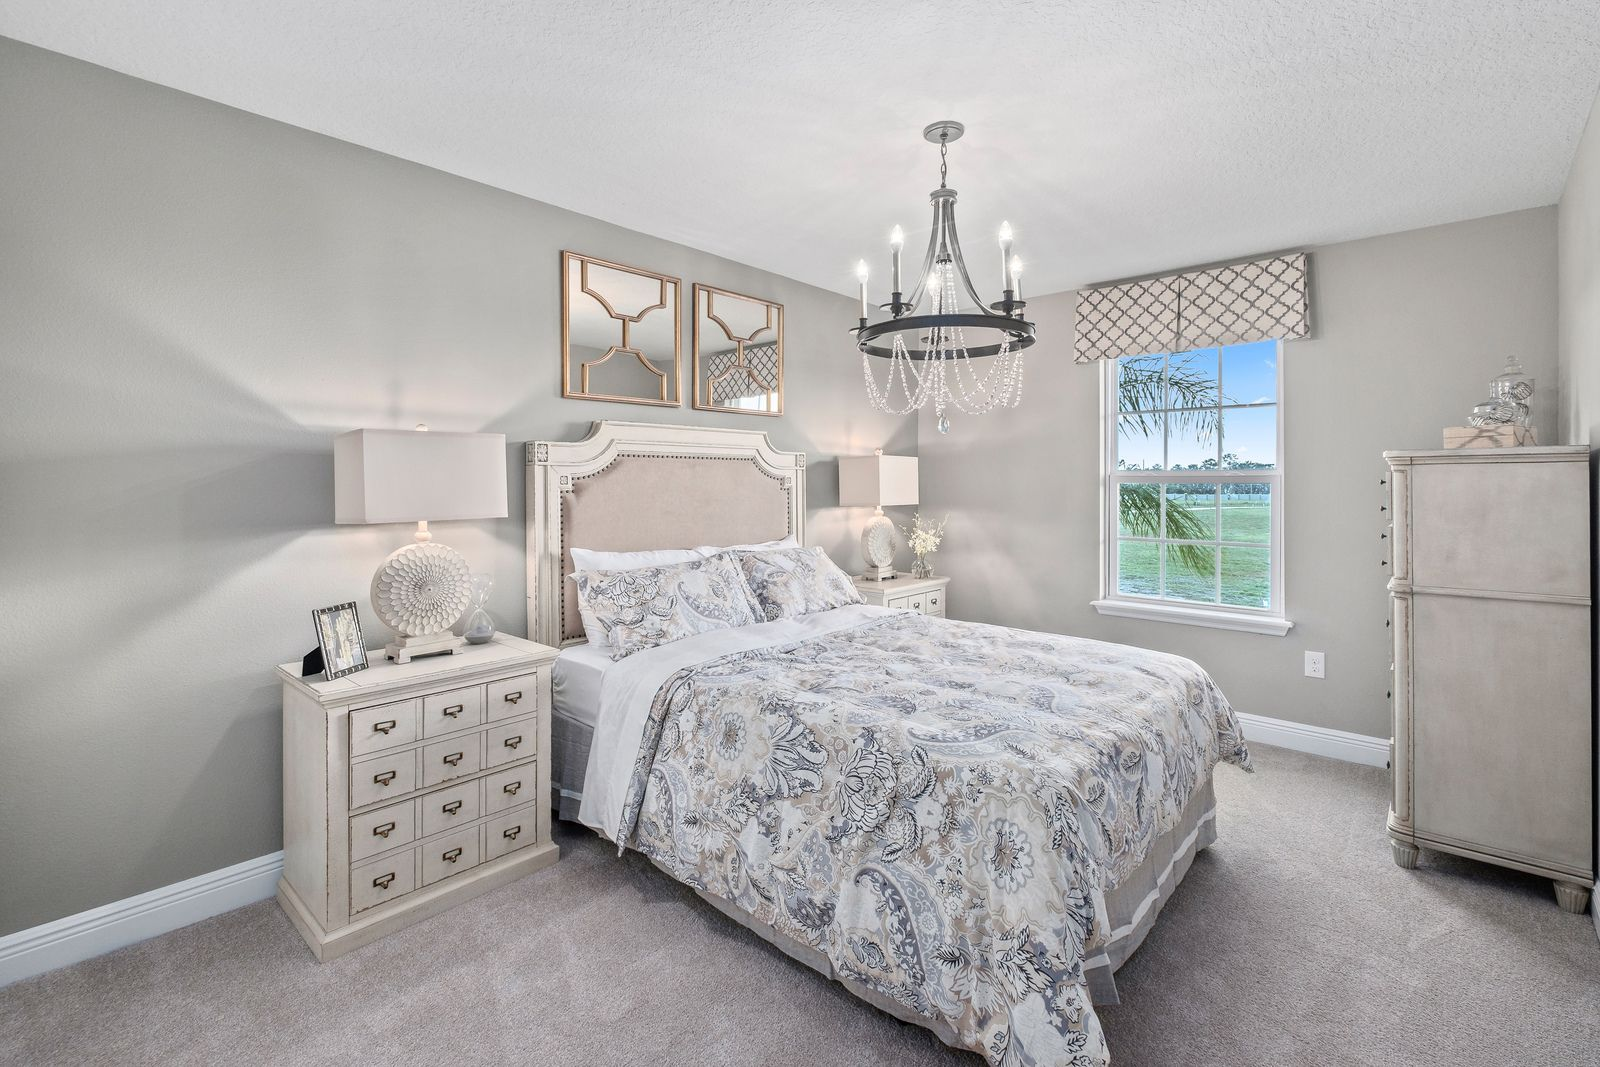 Bedroom-in-Summerland-at-Victoria Trails-in-Deland